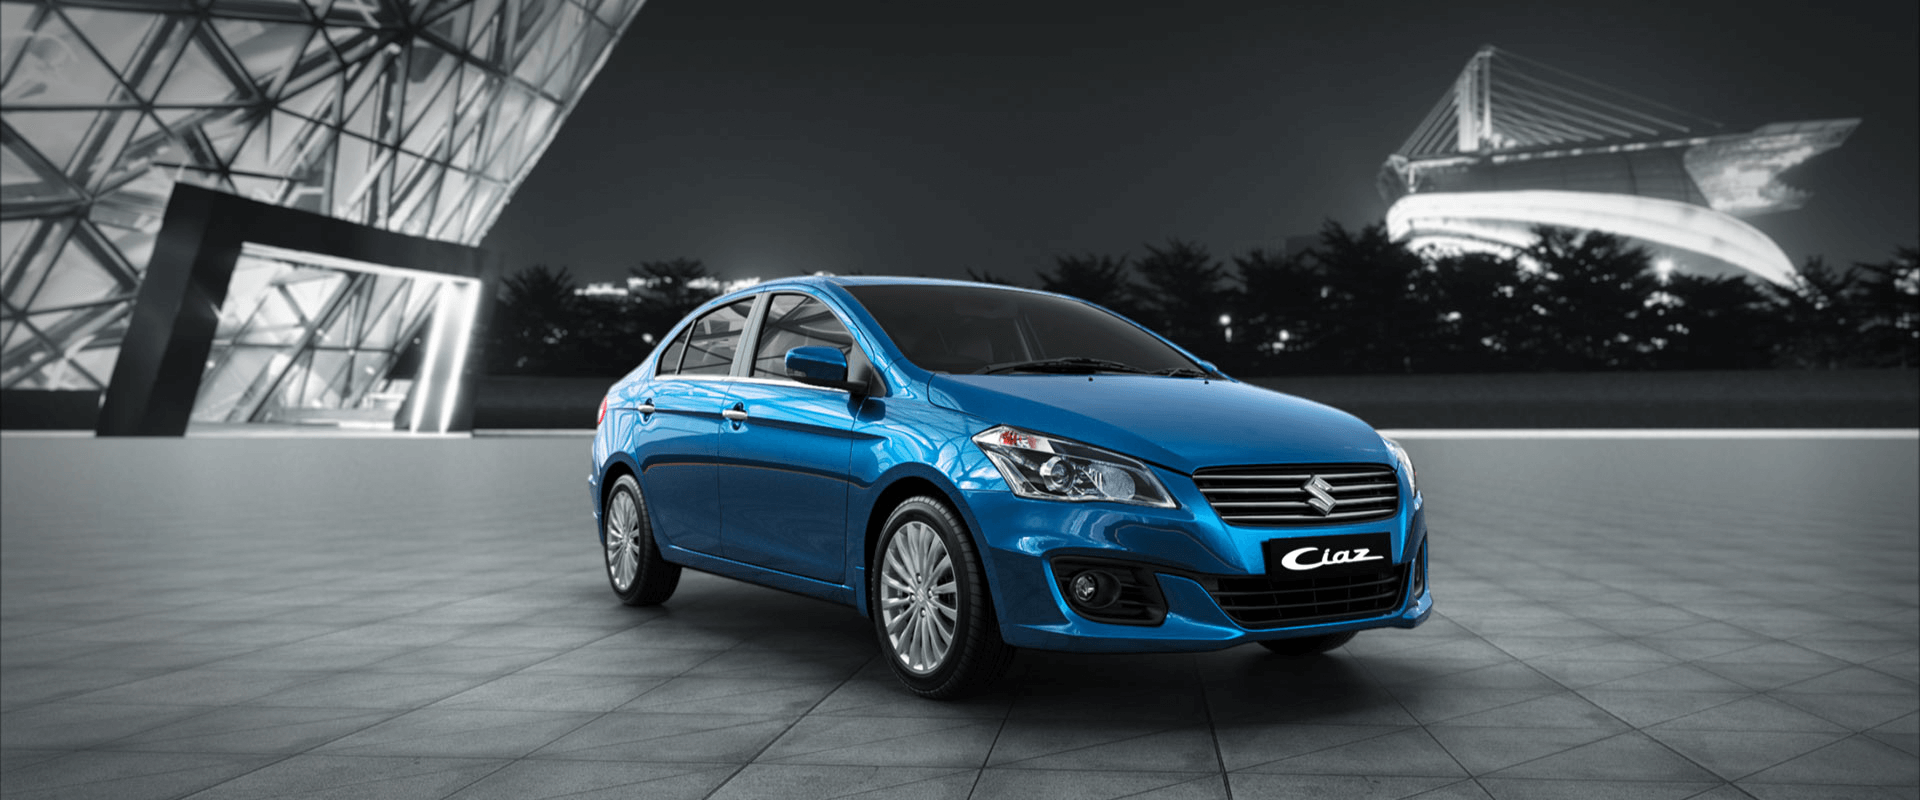 Maruti Ciaz 2017 Price in India, Specs, Mileage, Review, Photos